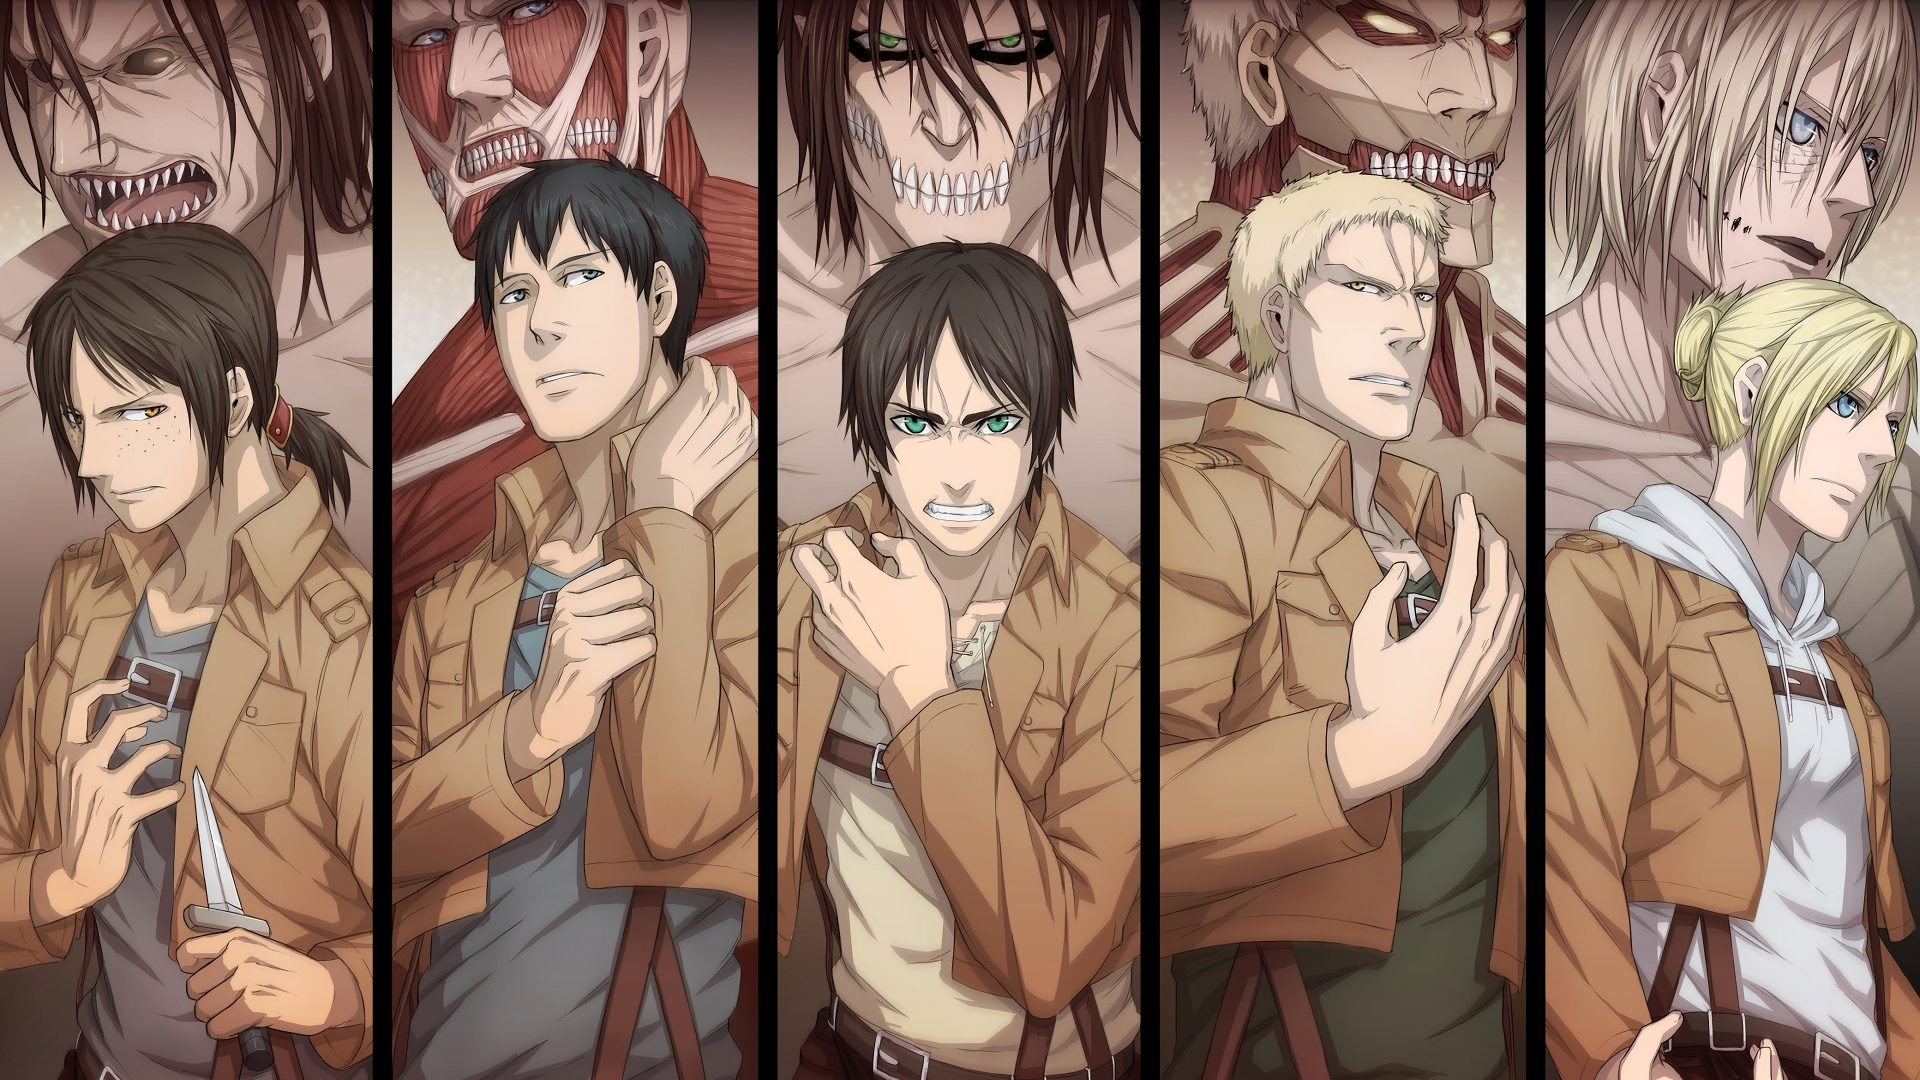 Attack On Titan Chapter 139 Ending Spoilers All The Titans Will Die In The Manga Finale Blocktoro